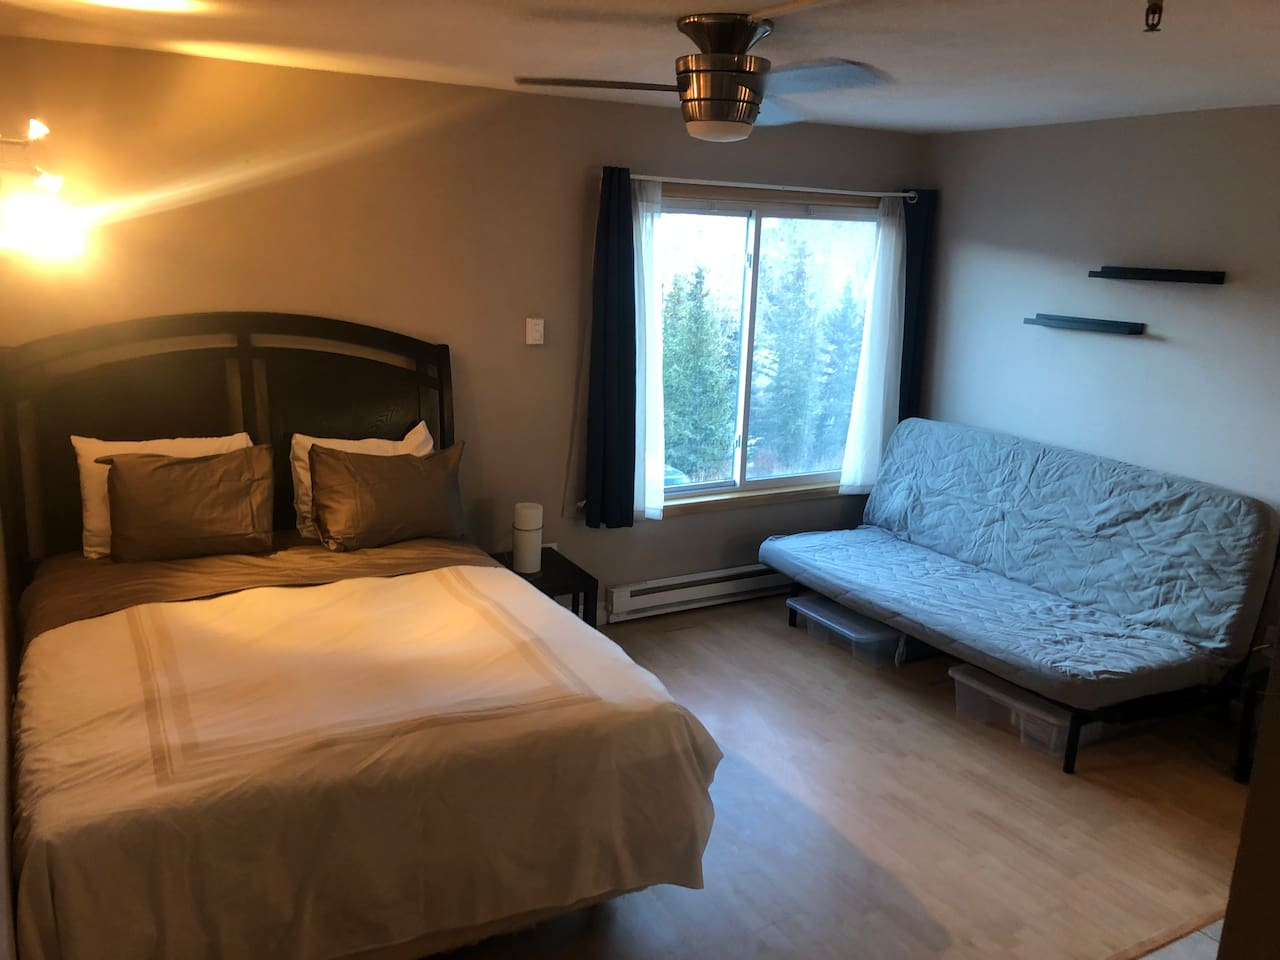 Studio Setup - Clean, Simple, your home away from home. Queen Bed, with new Queen Sized Ikea convertible bed.